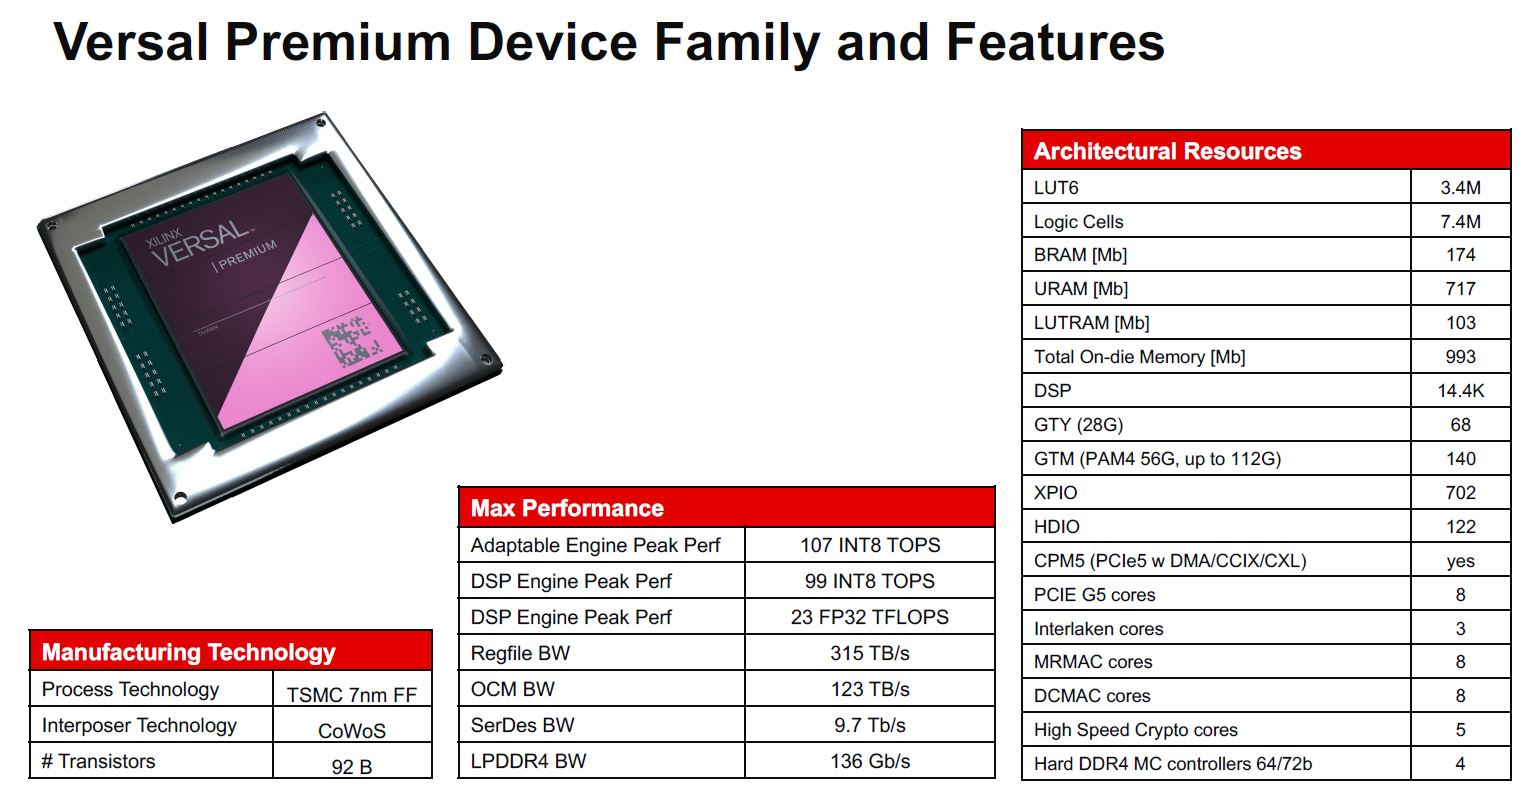 Xilinx Versal Premium Family And Features